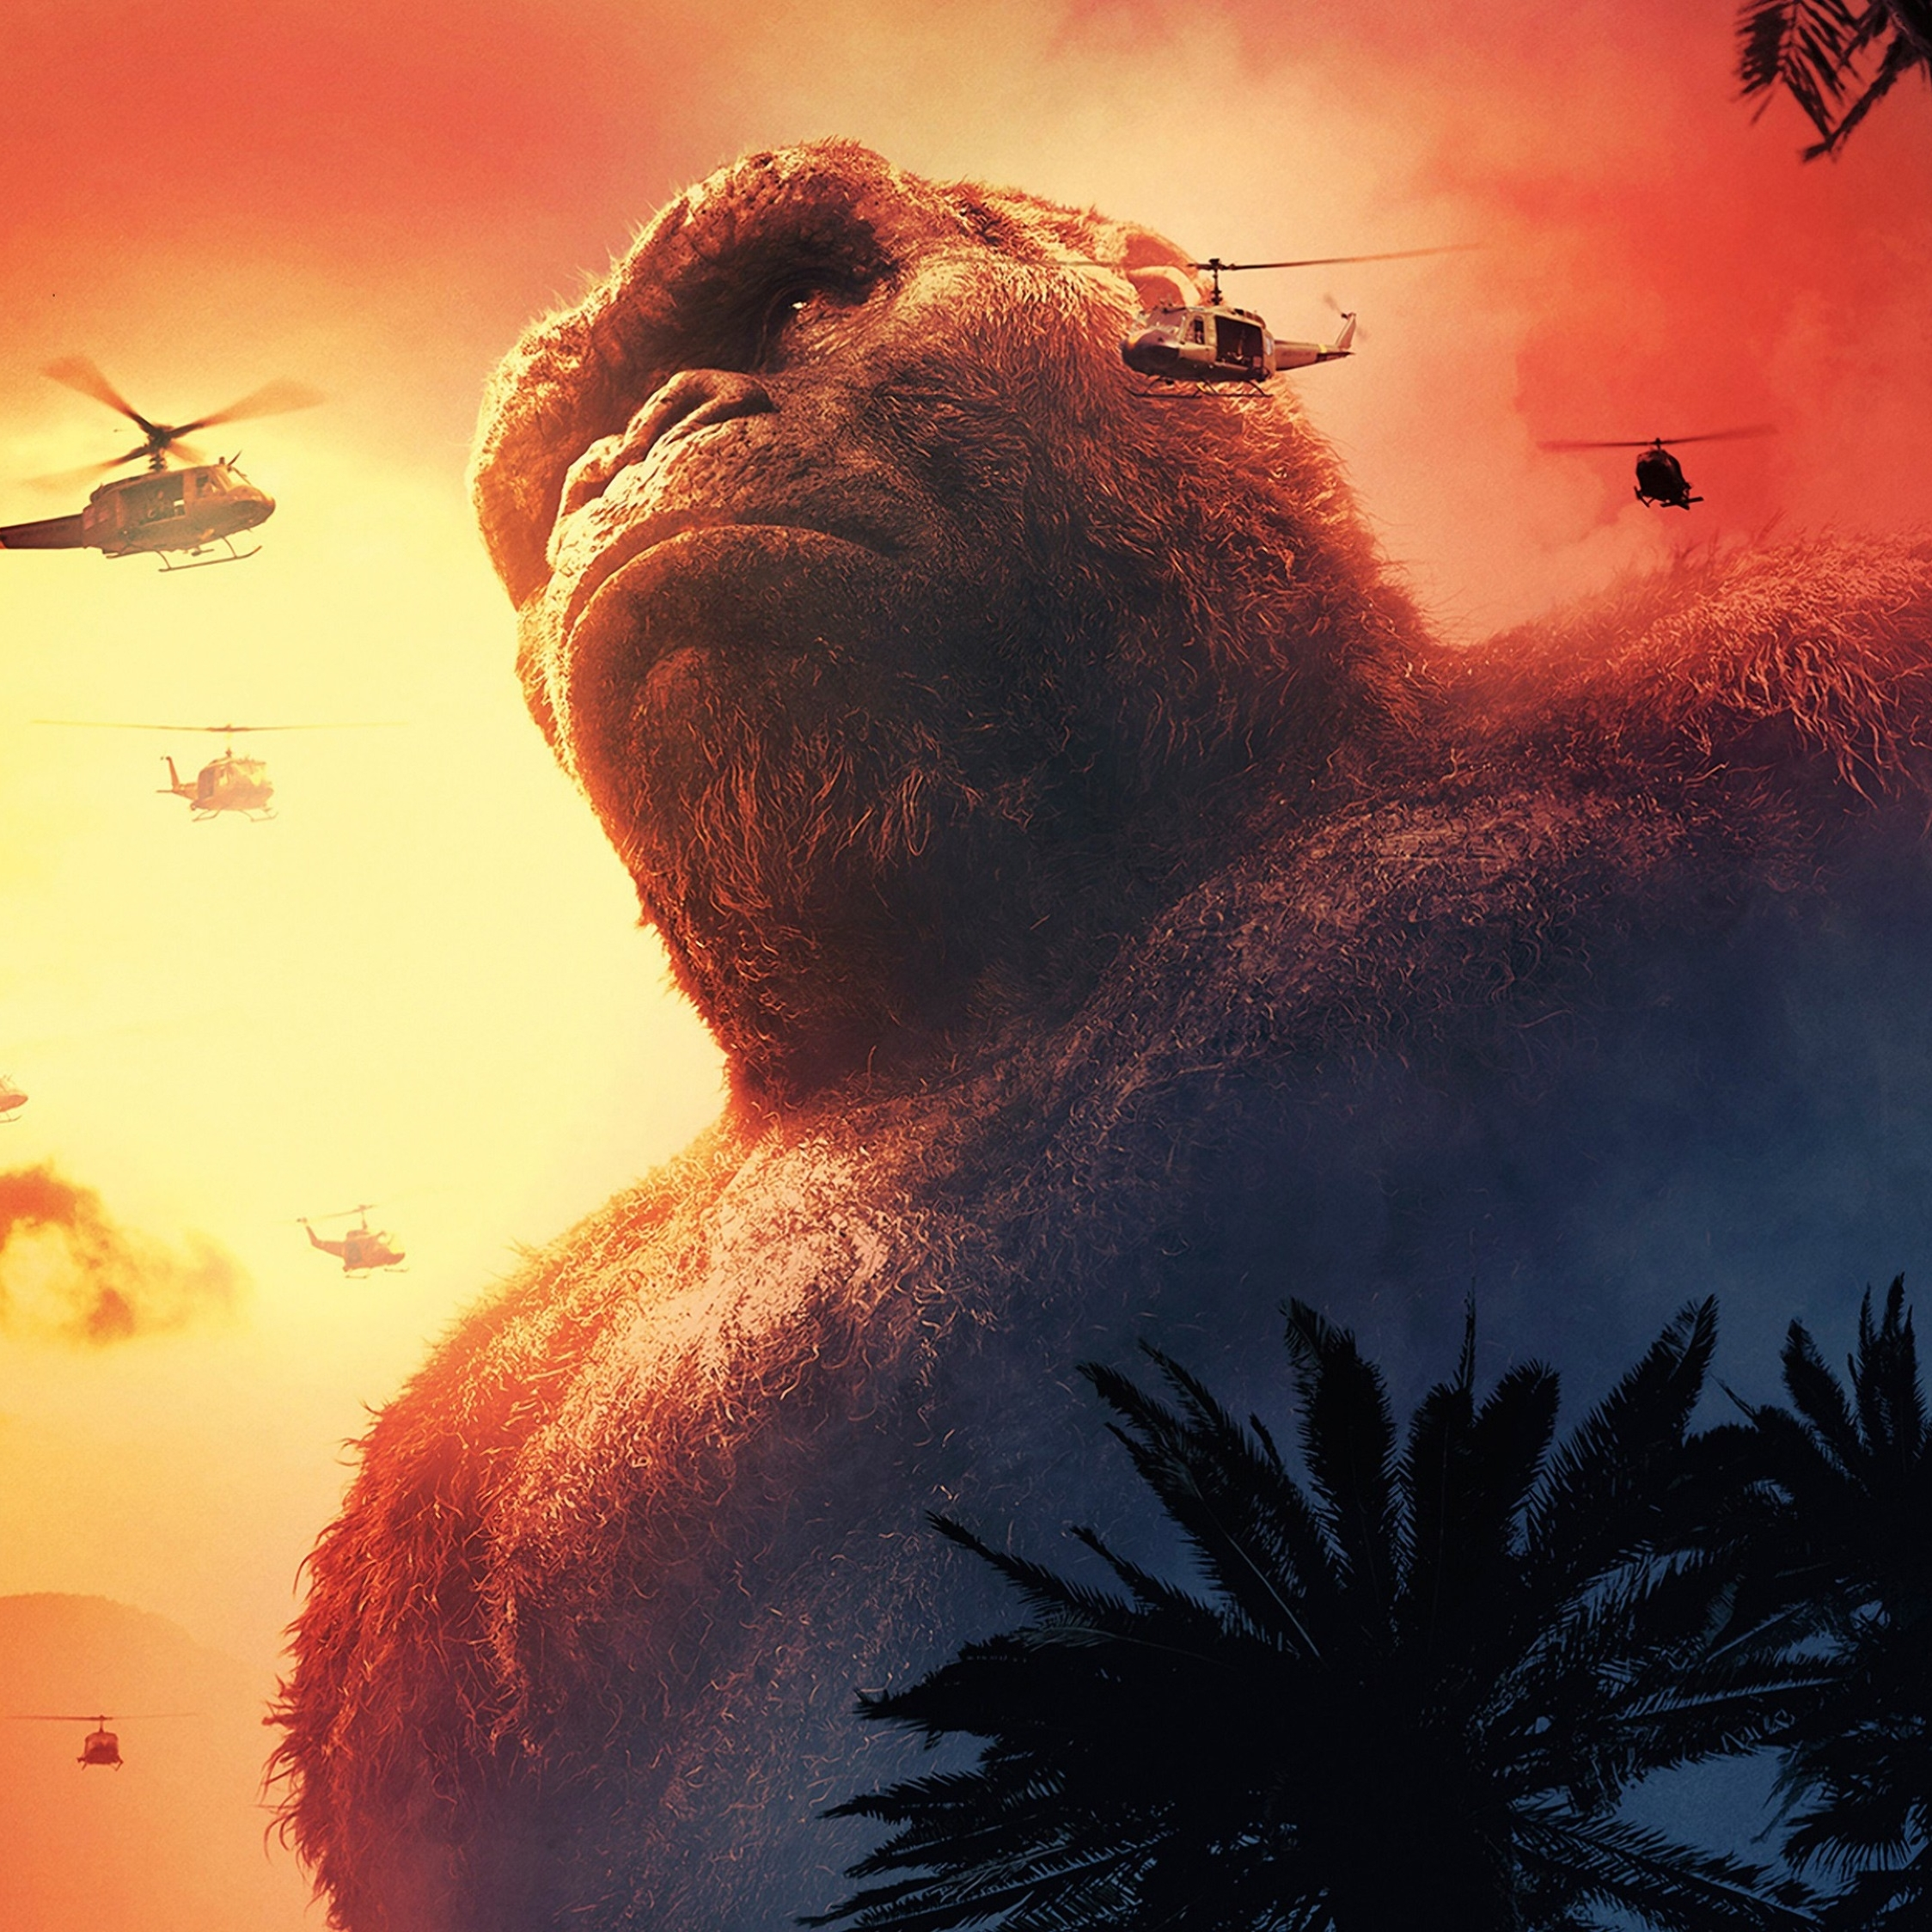 Download Kong Skull Island 4k Helicopter 2560x1080 Resolution Hd 4k